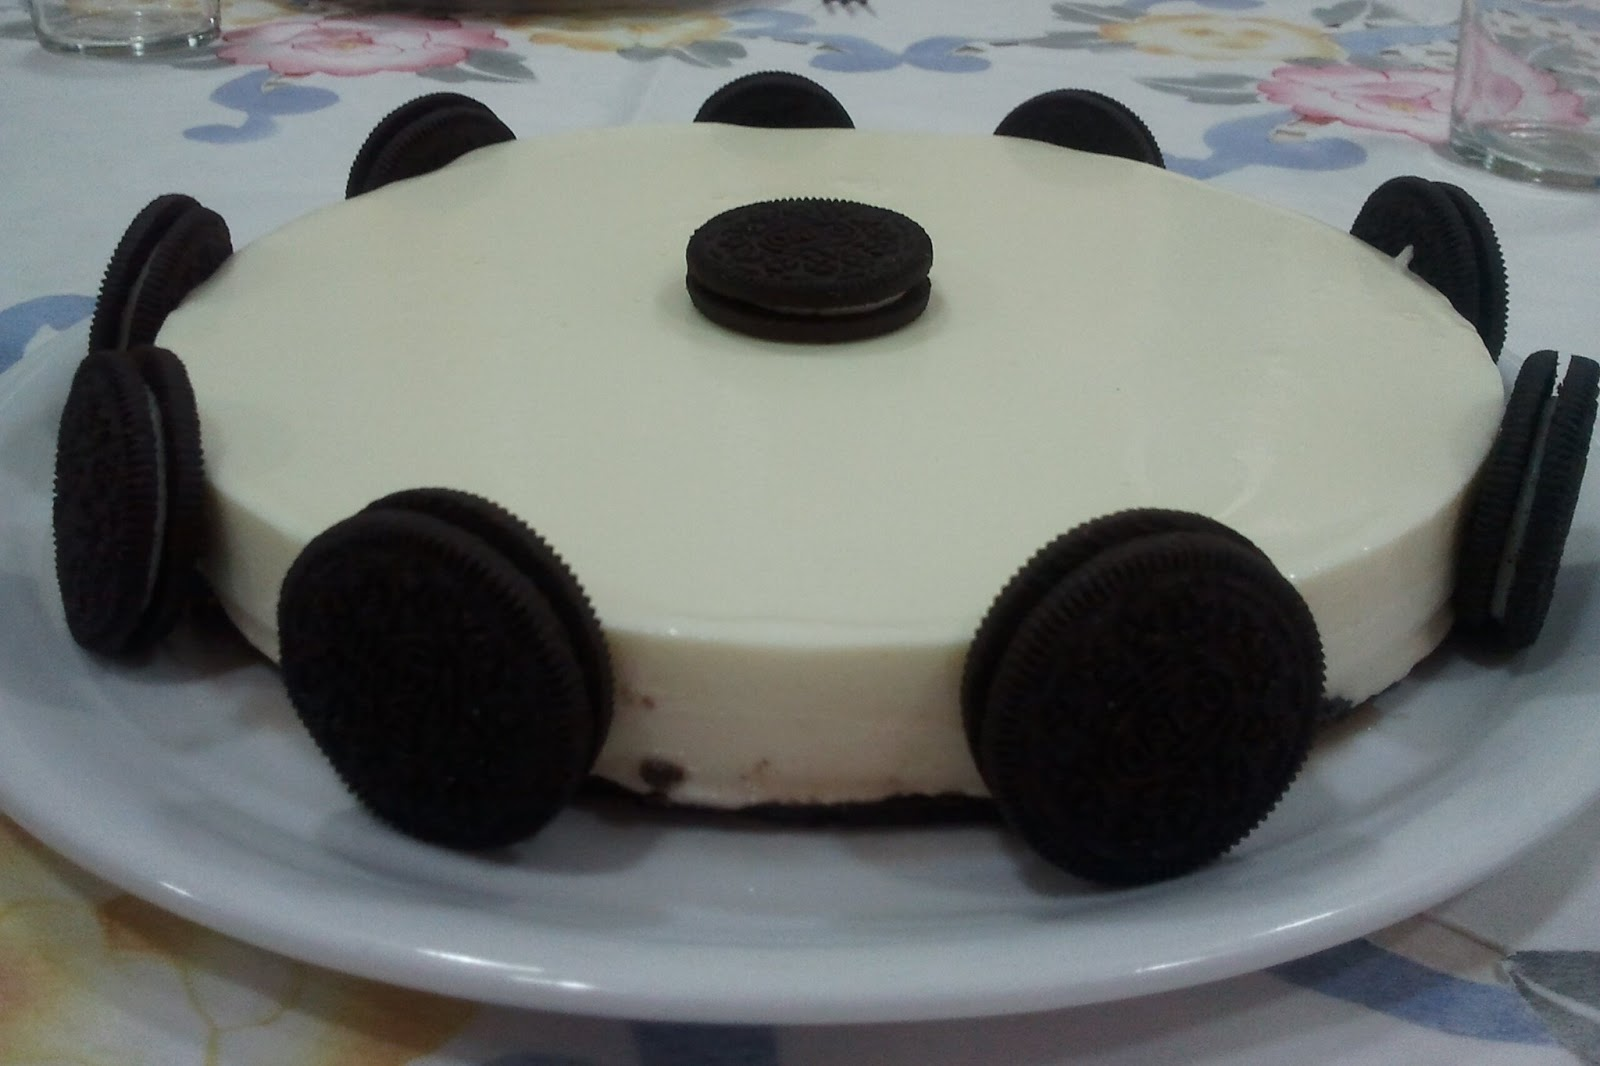 Crema De Chocolate Blanco Para Decorar Sugar Avenue Tarta De Chocolate Blanco Con Oreo